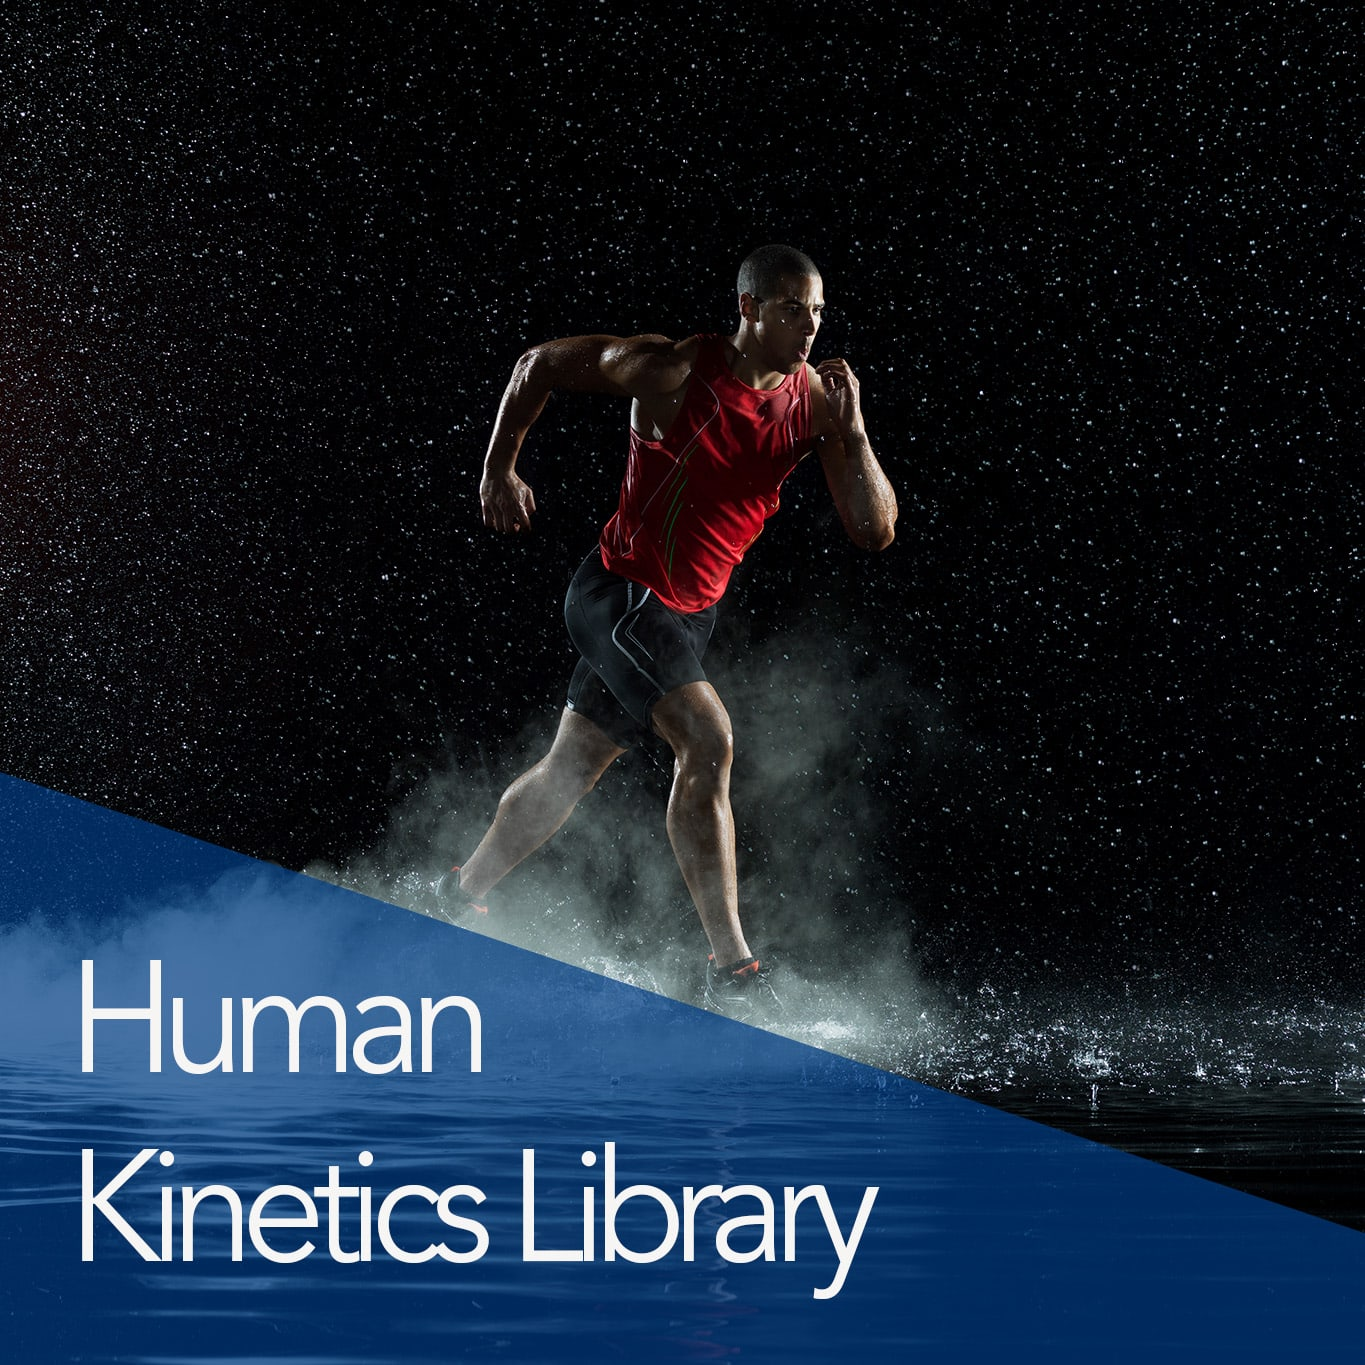 Browse the Human Kinetics Library